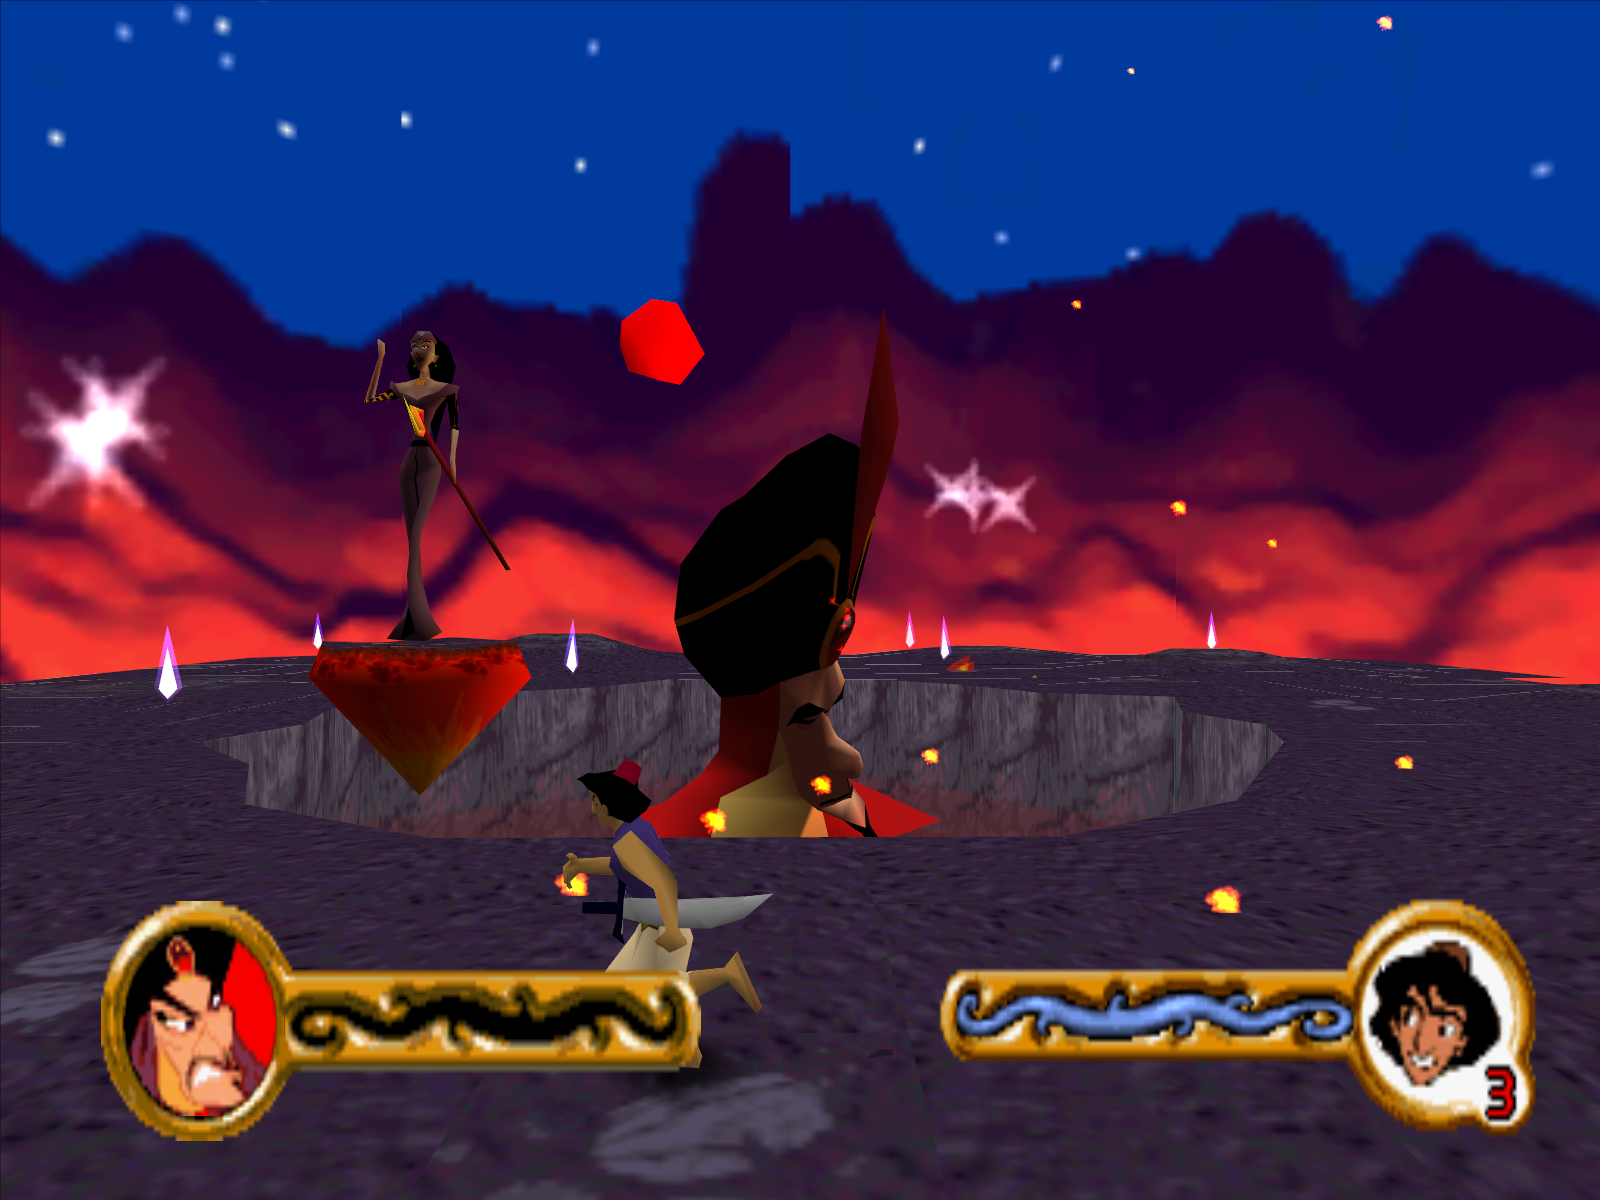 Disney's Aladdin in Nasira's Revenge Windows Aladdin vs Nasira and Jafar.